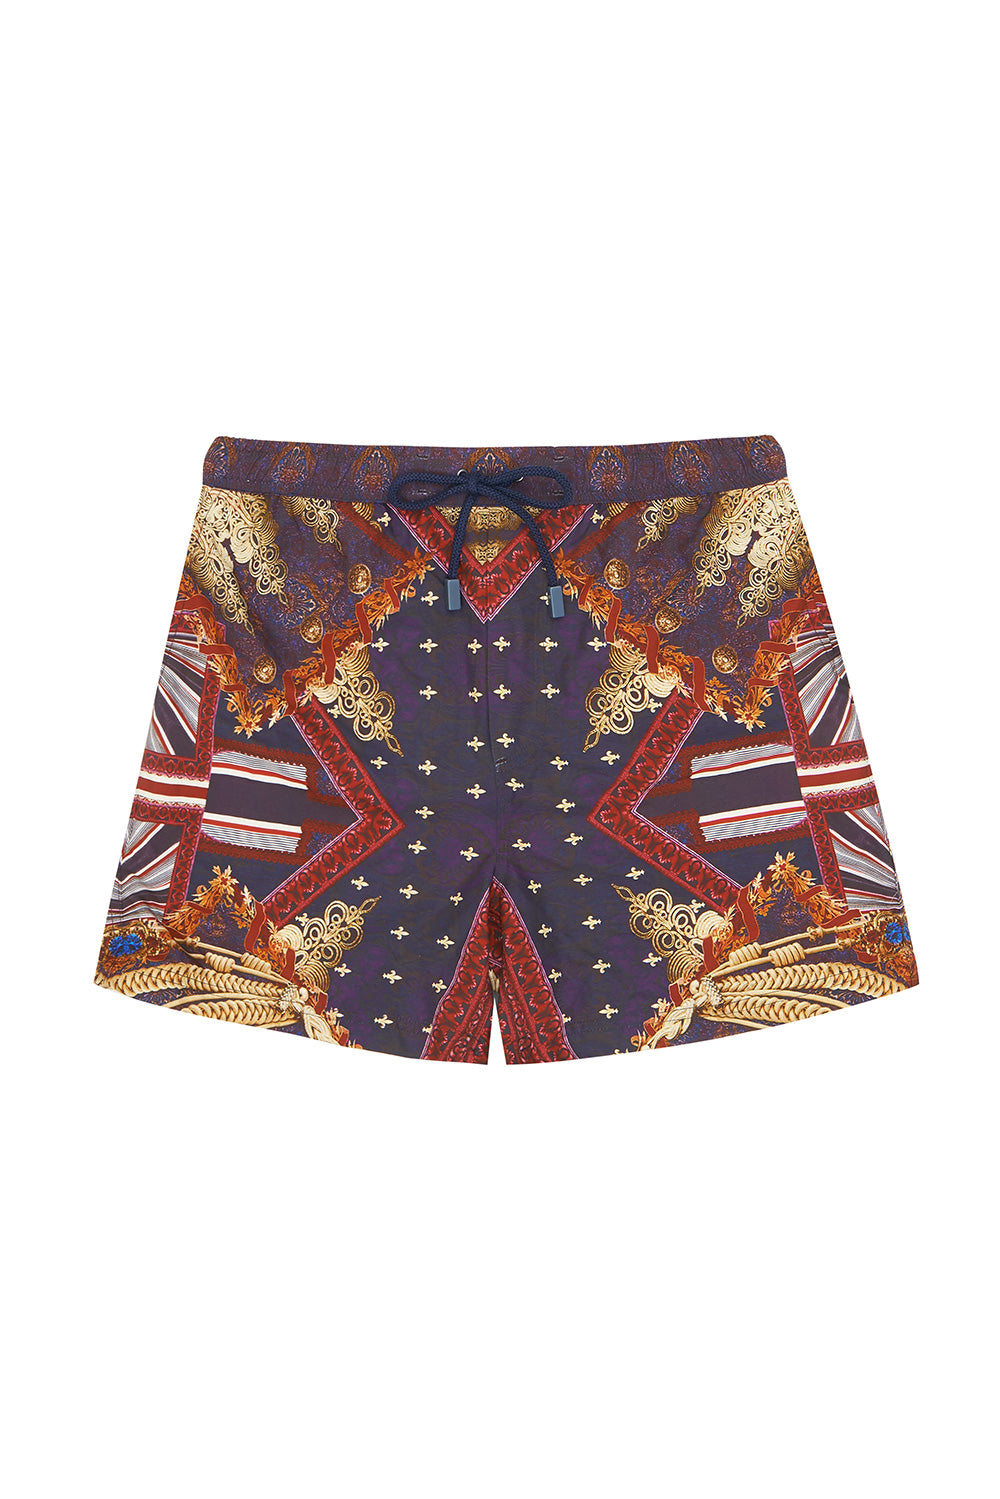 CAMILLA ELASTIC WAIST BOARDSHORT THIS CHARMING WOMAN